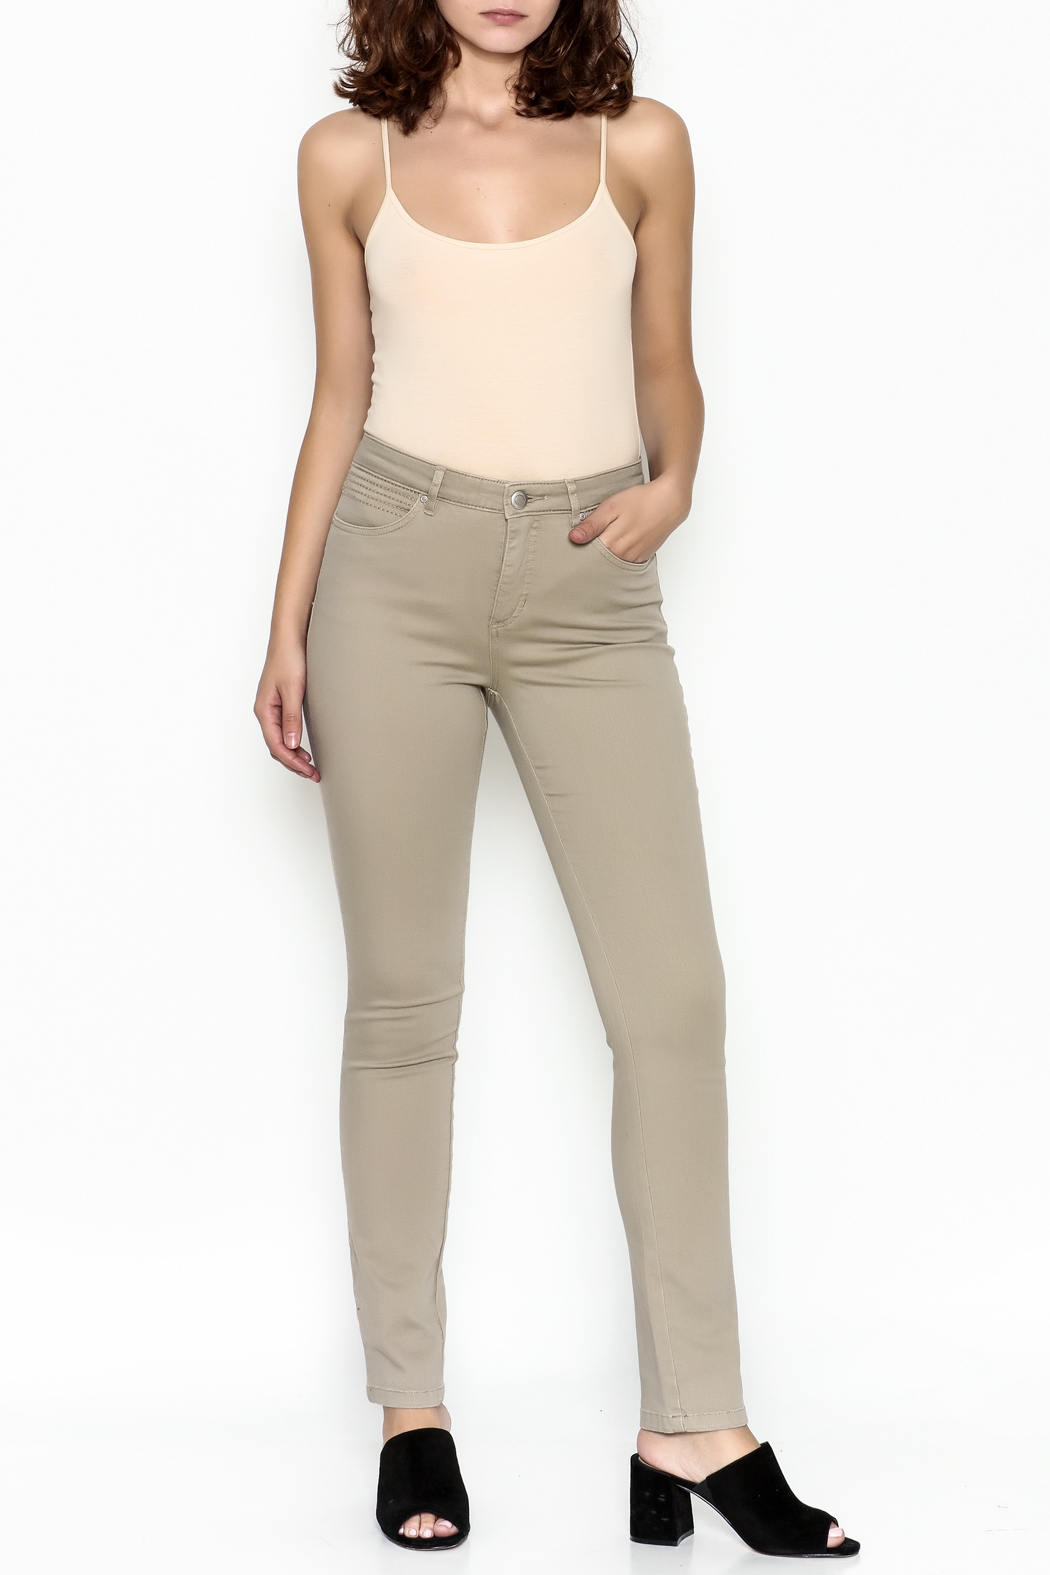 Tribal Brushed Twill Jeans - Side Cropped Image